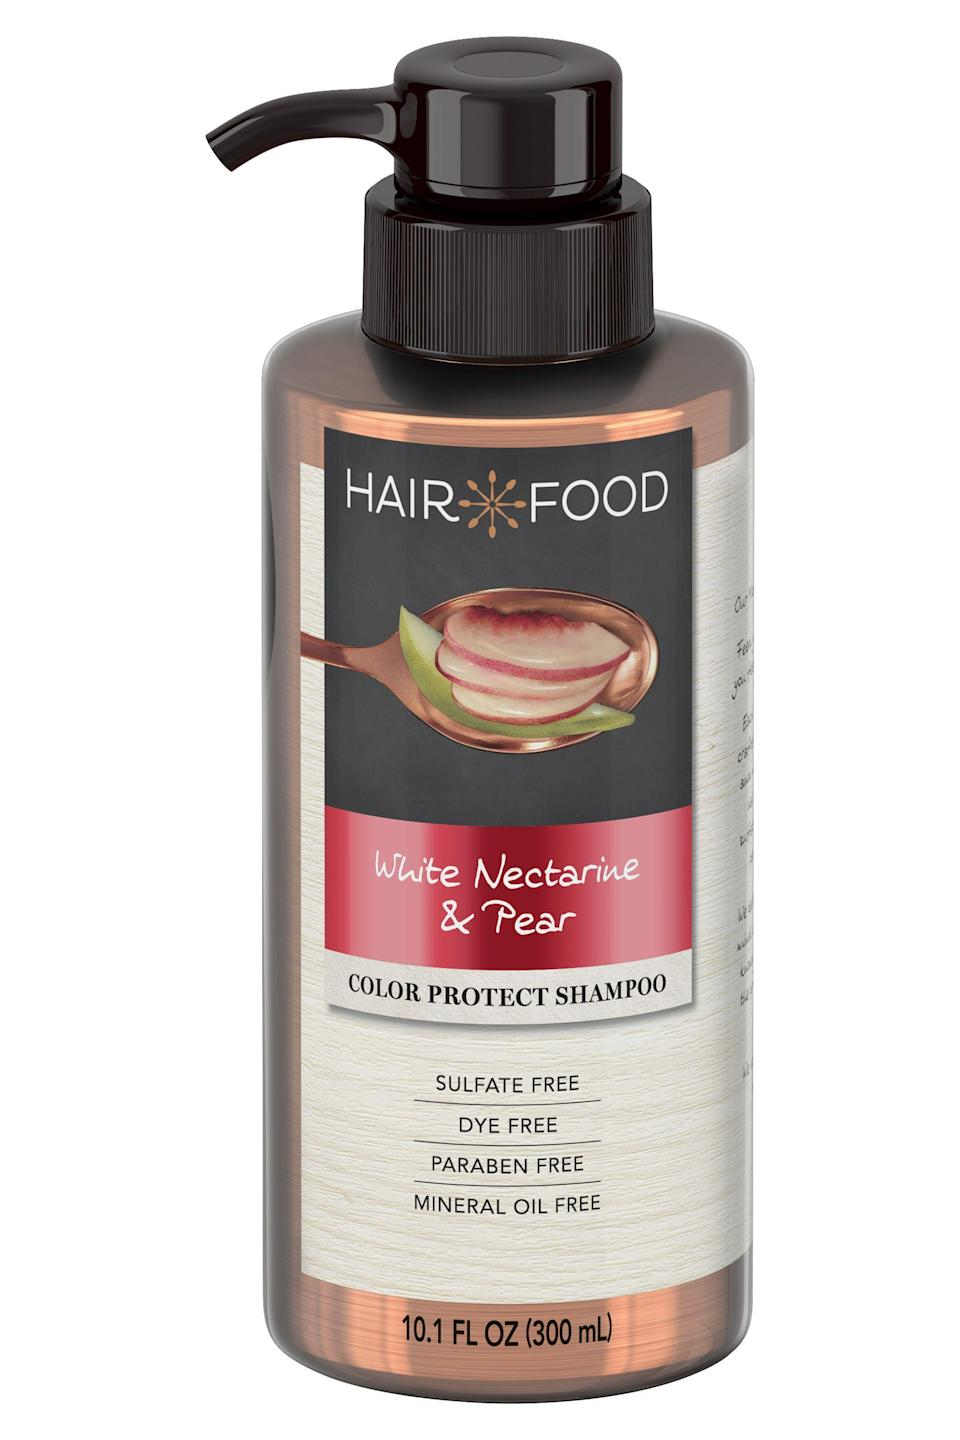 "<p><strong>Hair Food</strong></p><p><strong>$7.94</strong></p><p><a href=""https://go.redirectingat.com?id=74968X1596630&url=https%3A%2F%2Fwww.walmart.com%2Fip%2FHair-Food-Color-Protect-White-Nectarine-and-Pear-Shampoo-10-1-oz%2F786437657%3Fwmlspartner%3Dwlpa%26selectedSellerId%3D0&sref=https%3A%2F%2Fwww.goodhousekeeping.com%2Fbeauty%2Fhair%2Fg3878%2Fbest-shampoo-for-colored-hair%2F"" rel=""nofollow noopener"" target=""_blank"" data-ylk=""slk:Shop Now"" class=""link rapid-noclick-resp"">Shop Now</a></p><p>Hair Food's sulfate-free shampoo for colored hair plus its <a href=""https://go.redirectingat.com?id=74968X1596630&url=https%3A%2F%2Fwww.walmart.com%2Fip%2FHair-Food-Color-Protect-White-Nectarine-and-Pear-Conditioner-10-1-oz%2F155610337&sref=https%3A%2F%2Fwww.goodhousekeeping.com%2Fbeauty%2Fhair%2Fg3878%2Fbest-shampoo-for-colored-hair%2F"" rel=""nofollow noopener"" target=""_blank"" data-ylk=""slk:matching conditioner"" class=""link rapid-noclick-resp"">matching conditioner</a> proved the <strong>best at conditioning hair in the GH Beauty Lab's test</strong>, making it ideal for <a href=""https://www.goodhousekeeping.com/beauty-products/g26241901/best-shampoo-for-dry-hair/"" rel=""nofollow noopener"" target=""_blank"" data-ylk=""slk:dry"" class=""link rapid-noclick-resp"">dry</a>, <a href=""https://www.goodhousekeeping.com/beauty/hair/tips/a15884/fix-damaged-hair/"" rel=""nofollow noopener"" target=""_blank"" data-ylk=""slk:damaged"" class=""link rapid-noclick-resp"">damaged</a>, thick, or <a href=""https://www.goodhousekeeping.com/beauty/hair/a32733411/curl-hair-types/"" rel=""nofollow noopener"" target=""_blank"" data-ylk=""slk:textured hair"" class=""link rapid-noclick-resp"">textured hair</a>. It also earned a perfect score for being non-irritating. ""Dyeing my hair left it very dry, and I loved how moisturized it felt after just one use,"" a tester reported.<br></p>"